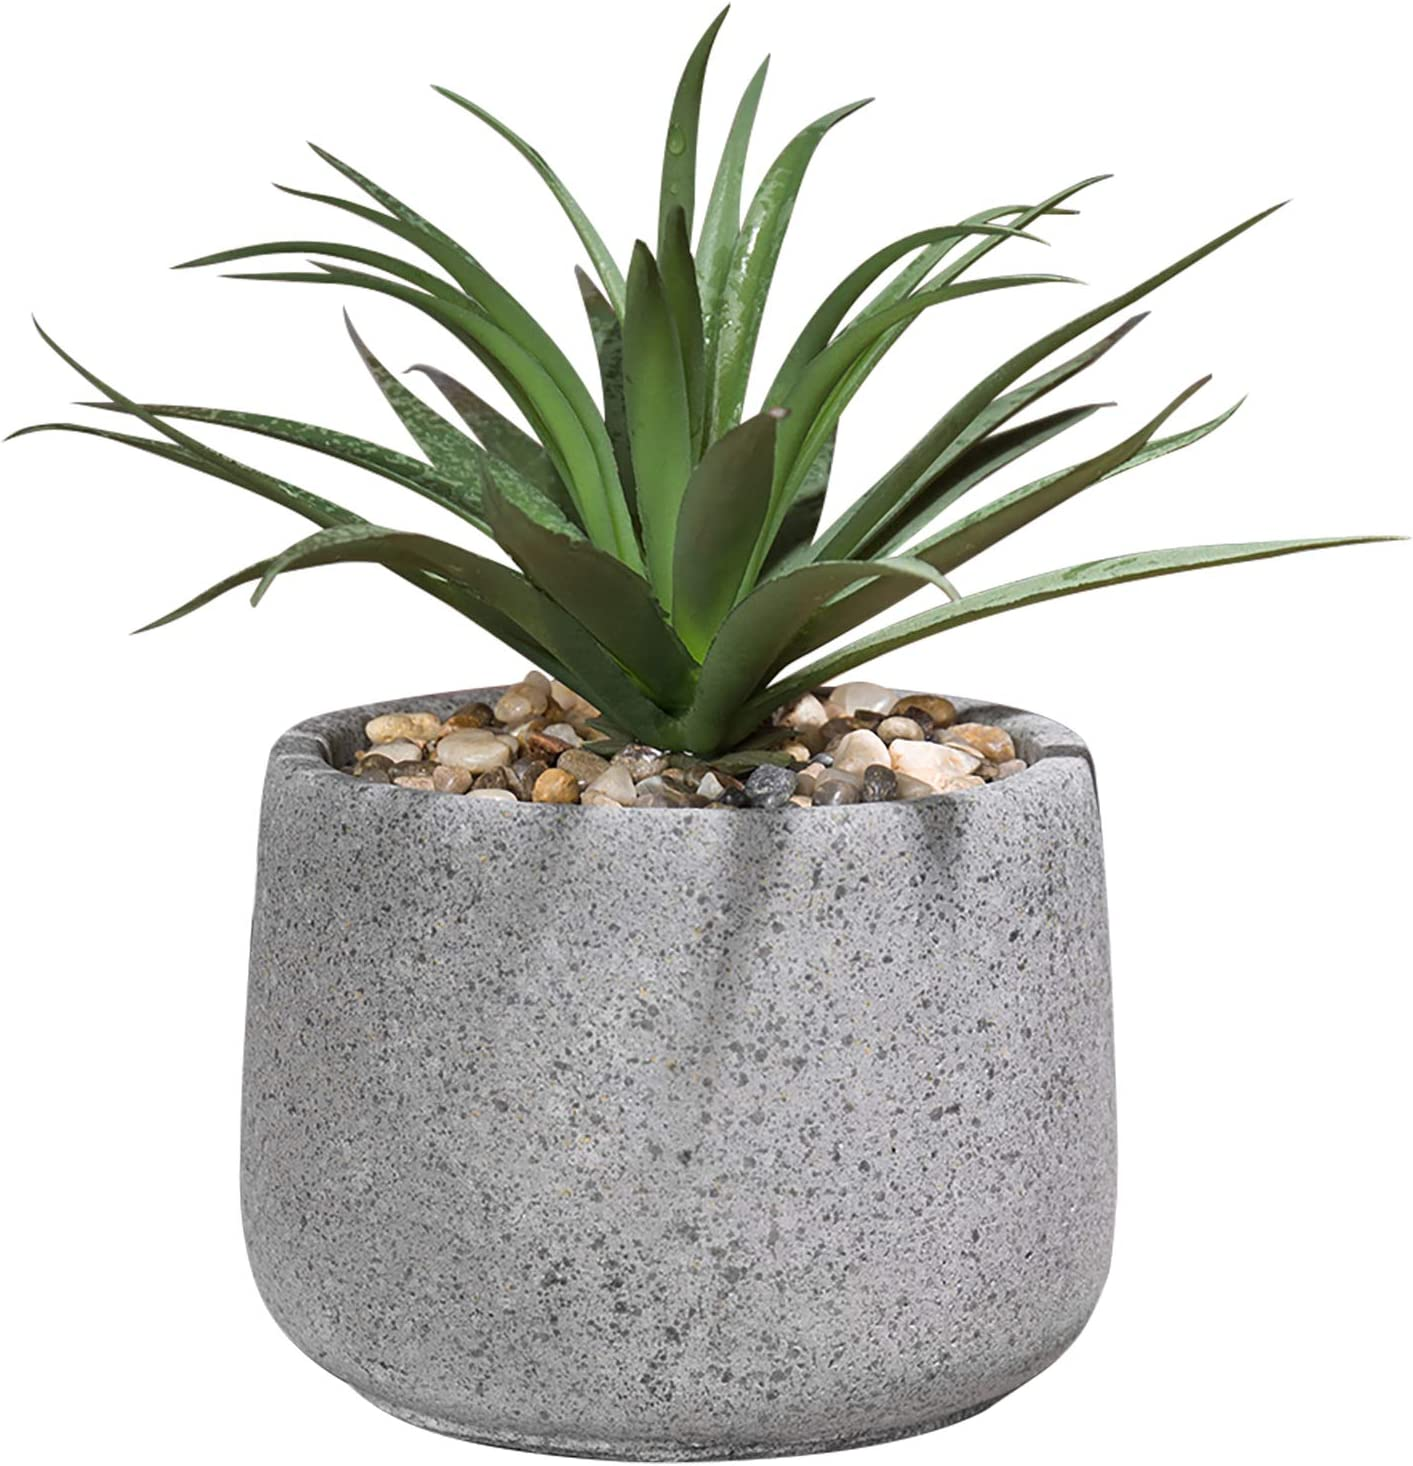 Mygift Decorative Faux Agave Artificial Greenery Plant In Speckled Gray Cement Pot Home Kitchen